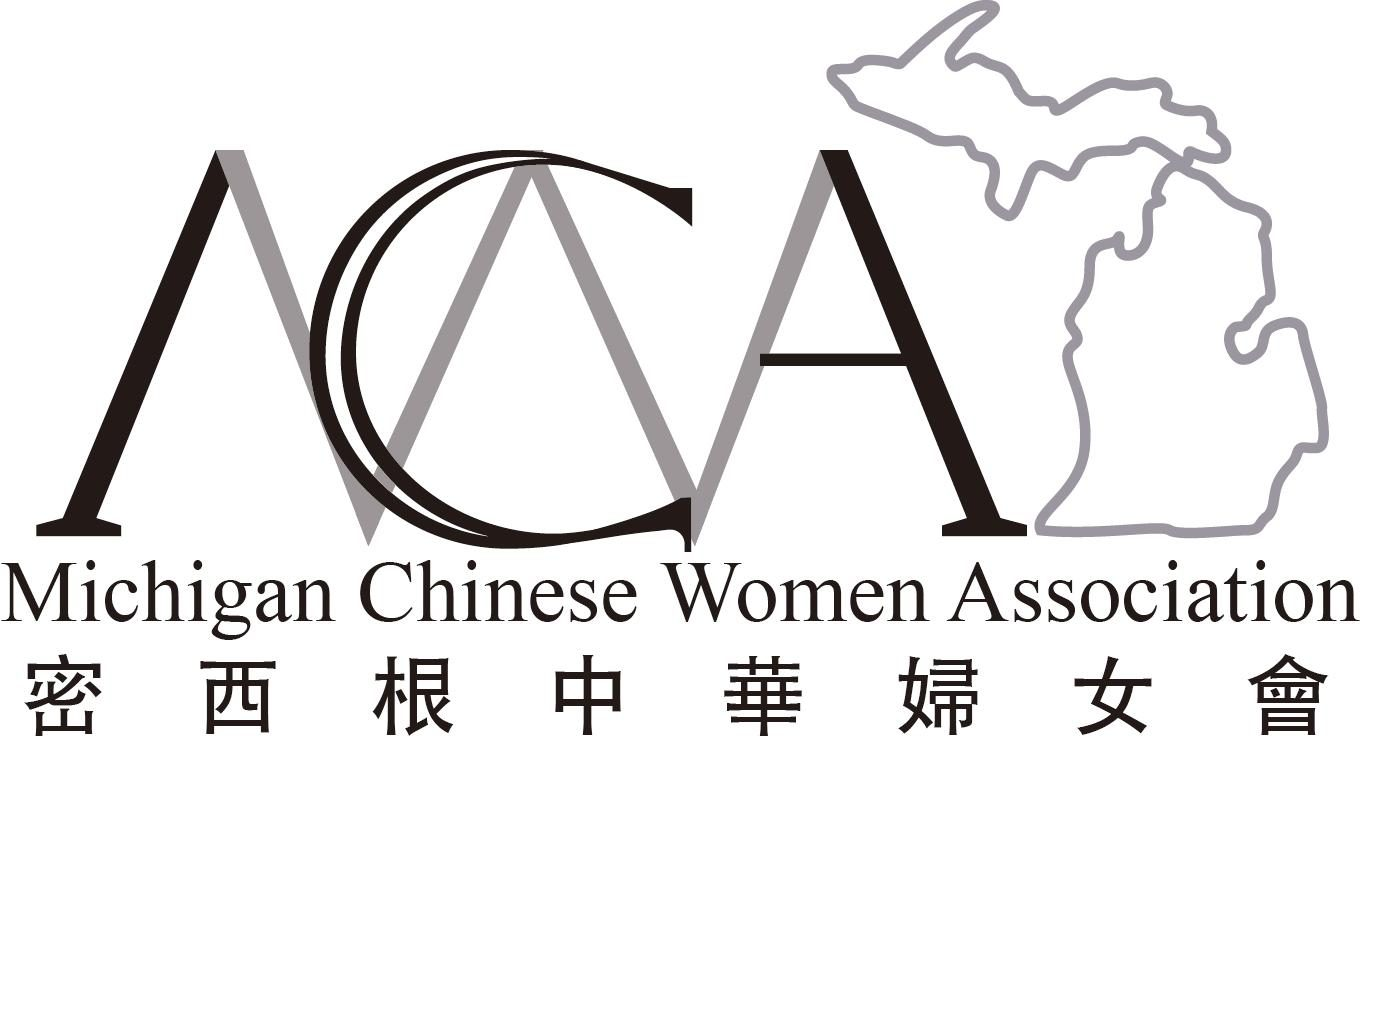 Michigan Chinese Women Association